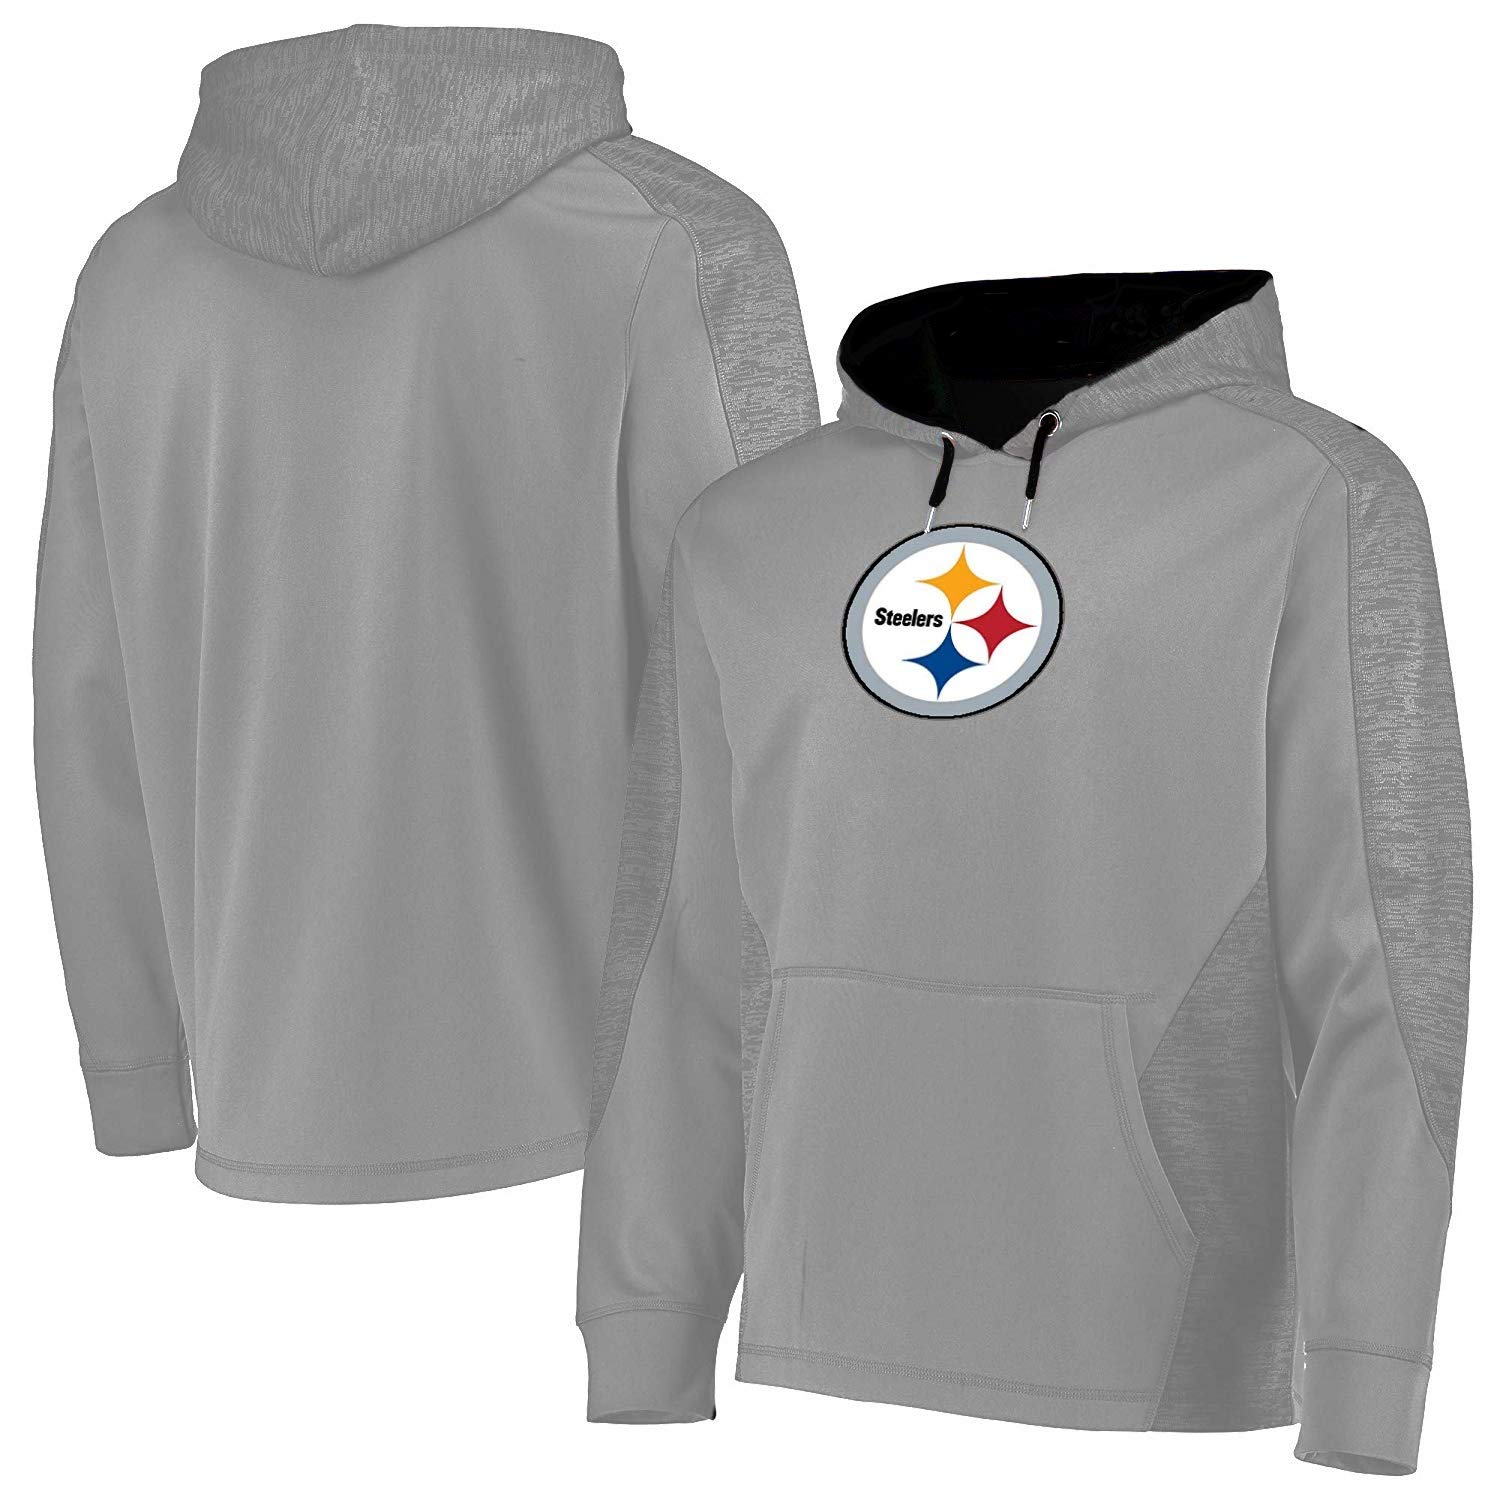 hot sale online 39a1b 0abaf Amazon.com : Majestic Pittsburgh Steelers Charcoal Ultra ...